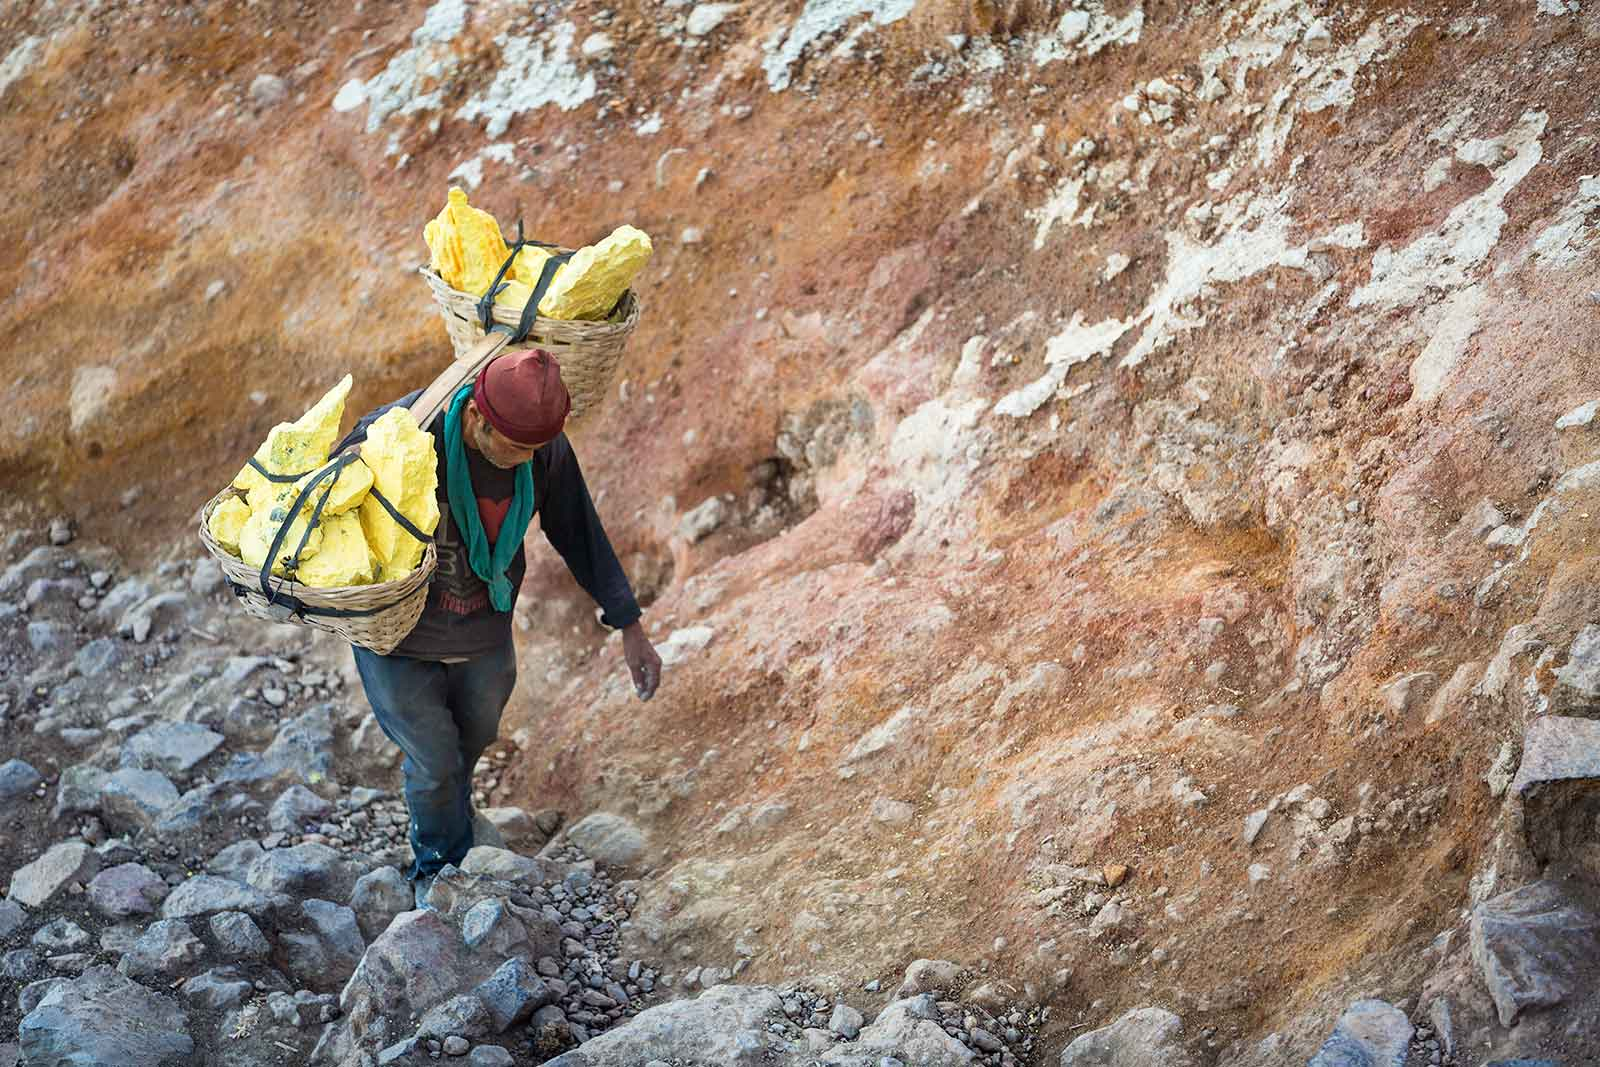 A miner ascends from the Kawah Ijen crater with his baskets full of sulfur.